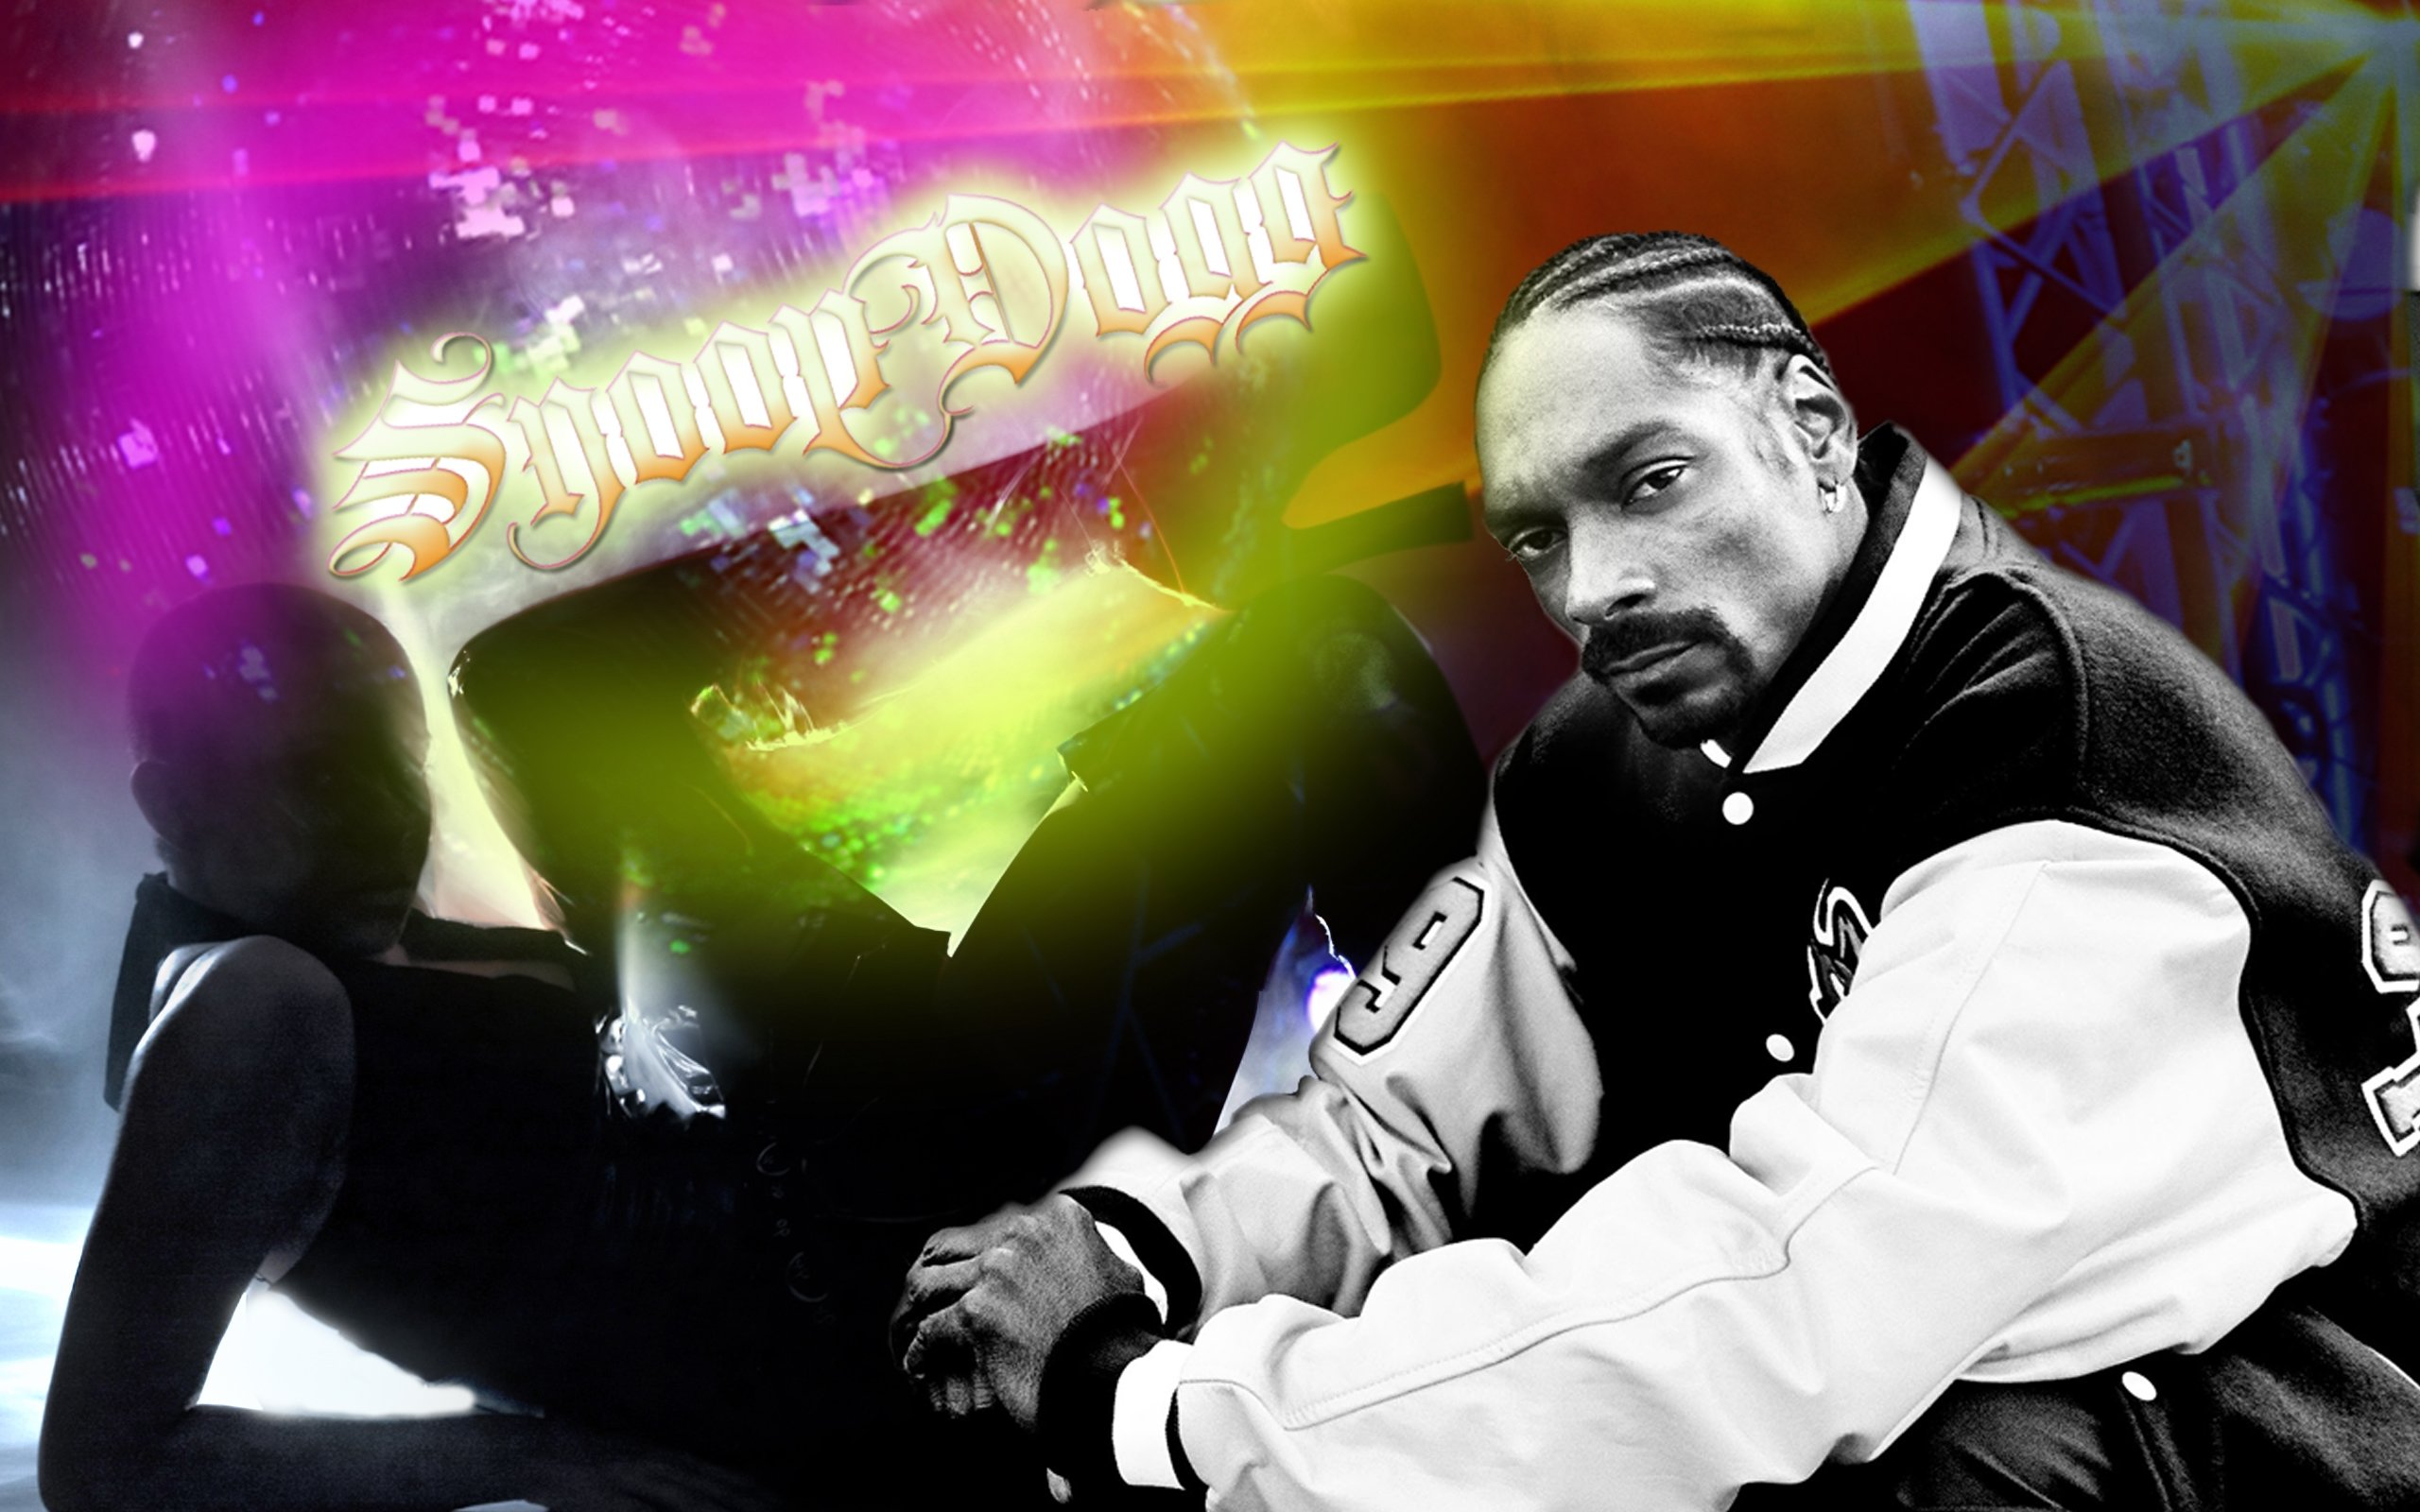 Free Download Snoop Dogg Wallpaper Id 165649 Hd 2560x1600 For Computer